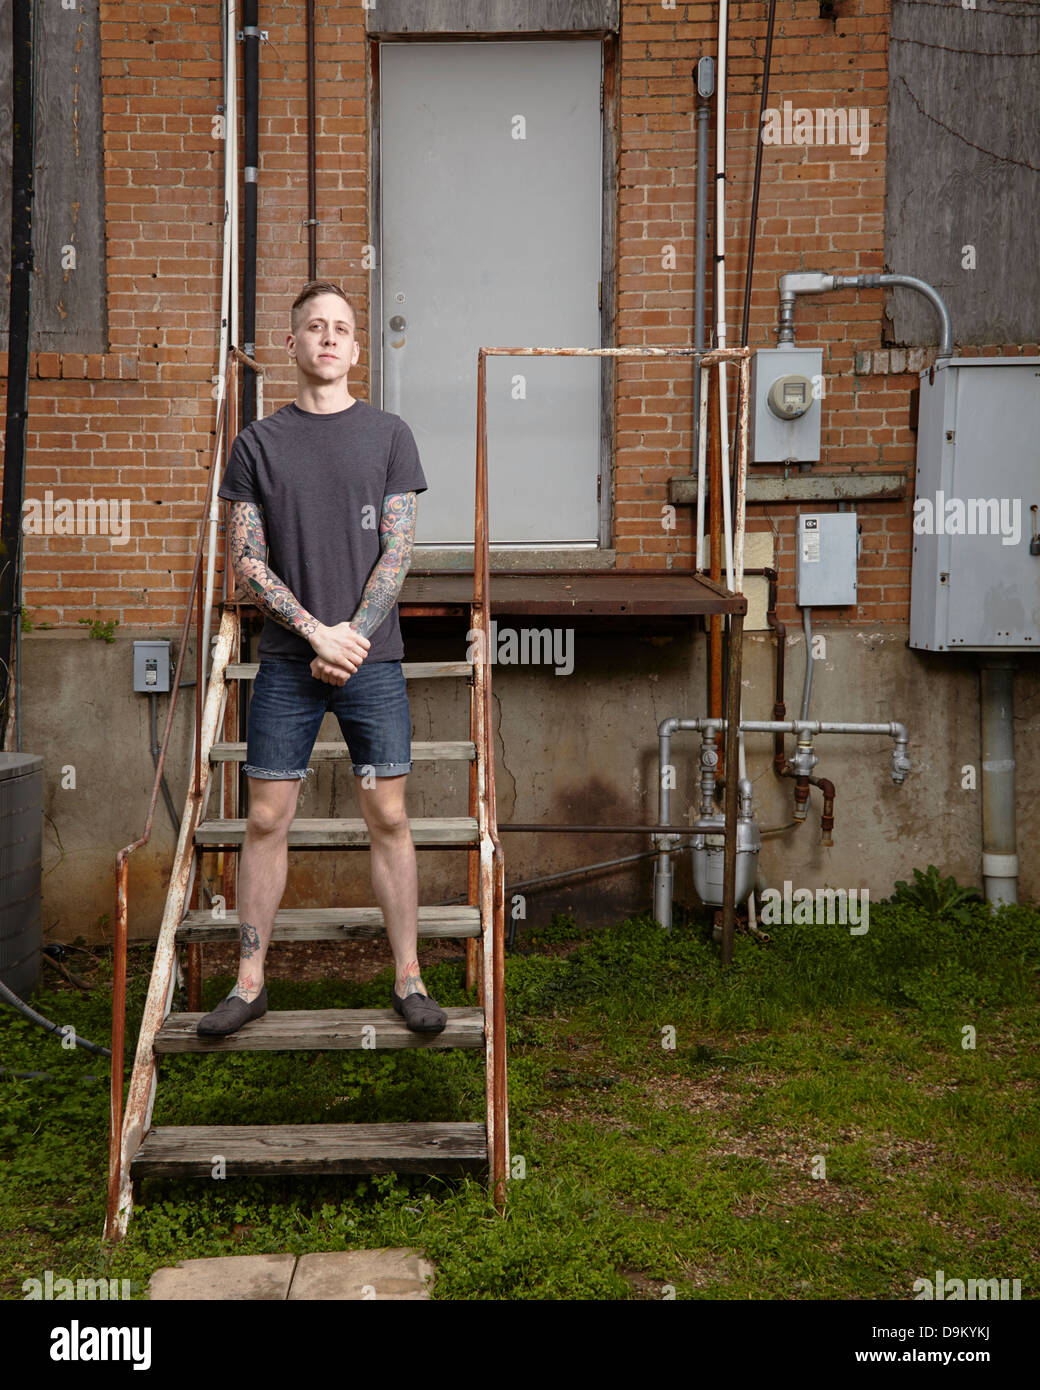 Portrait of young tattooed man standing on staircase Photo Stock